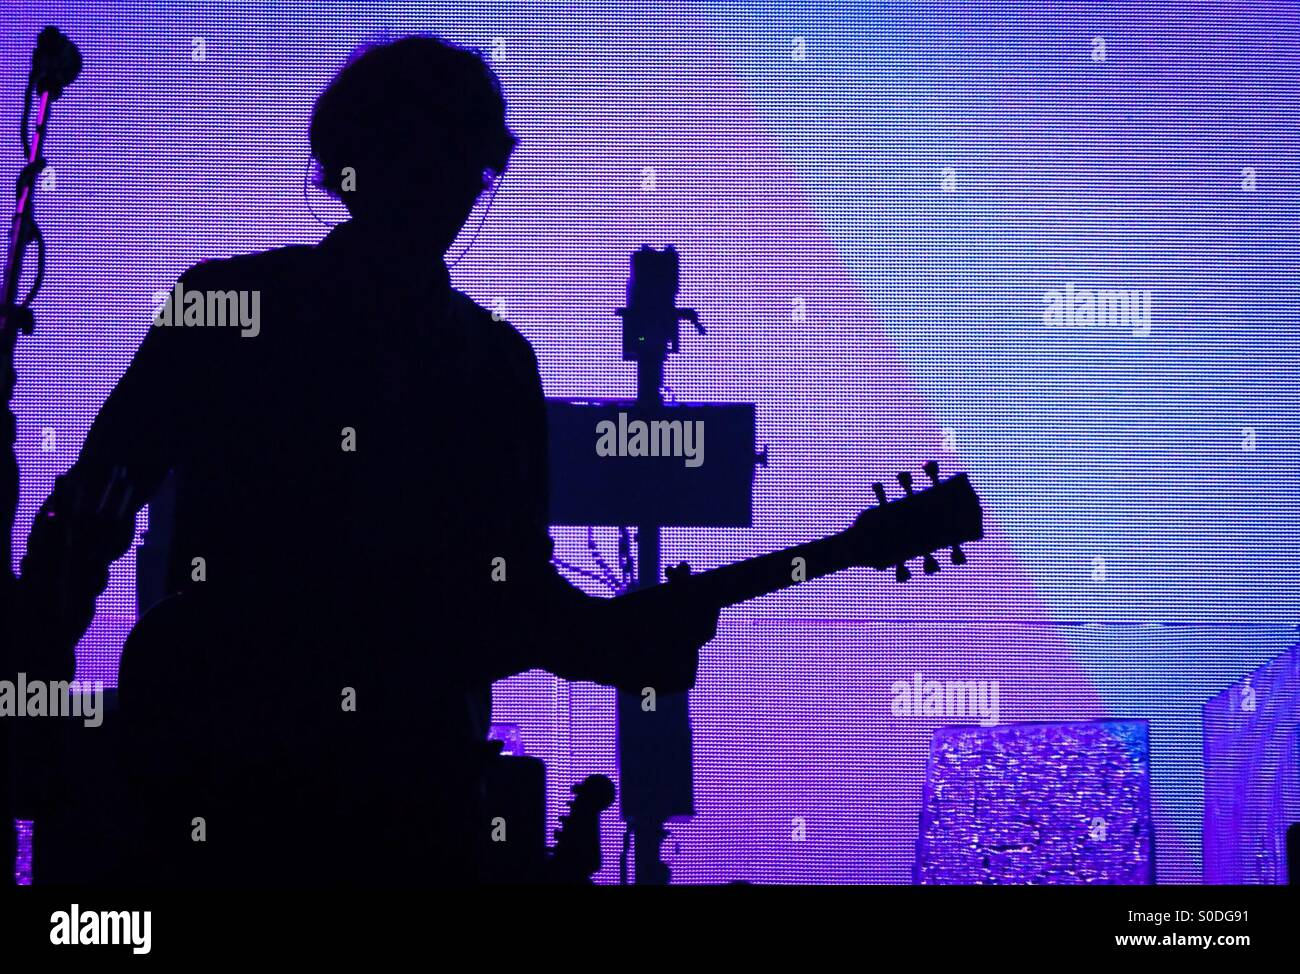 Silhouette of Tim Carter of Kasabian at Brixton Academy 4th December 2014. Stock Photo